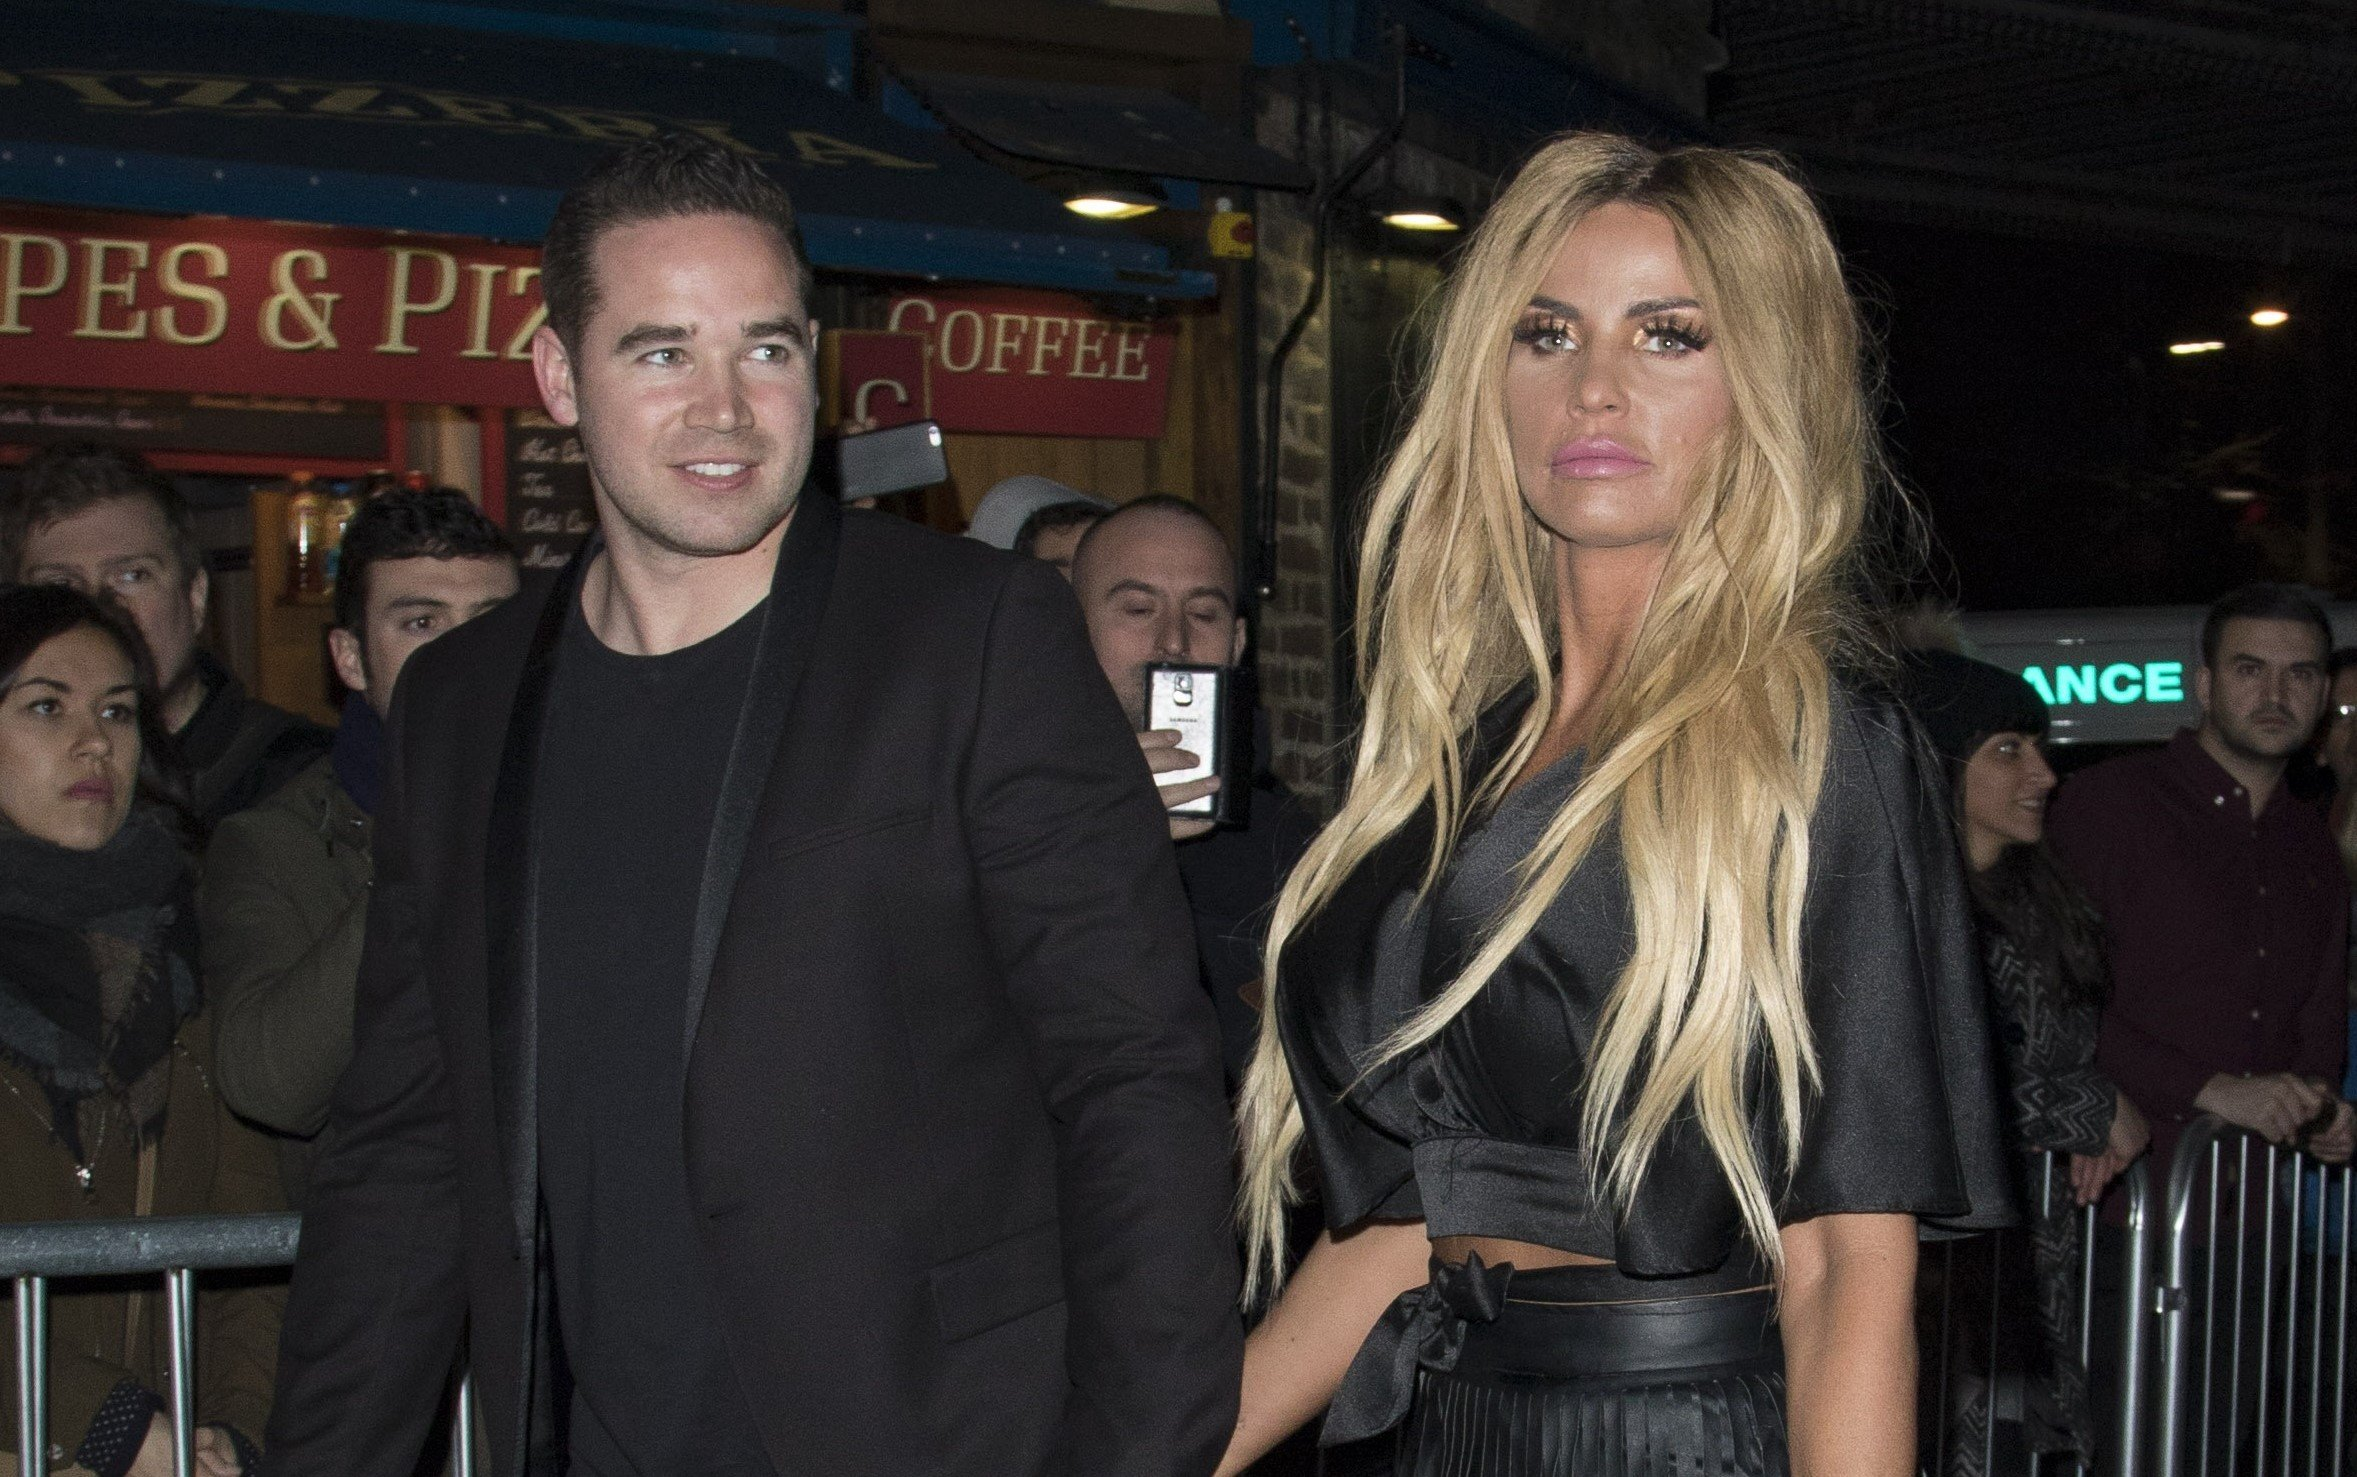 Katie Price 'desperate to divorce Kieran Hayler by Christmas as they row over money'